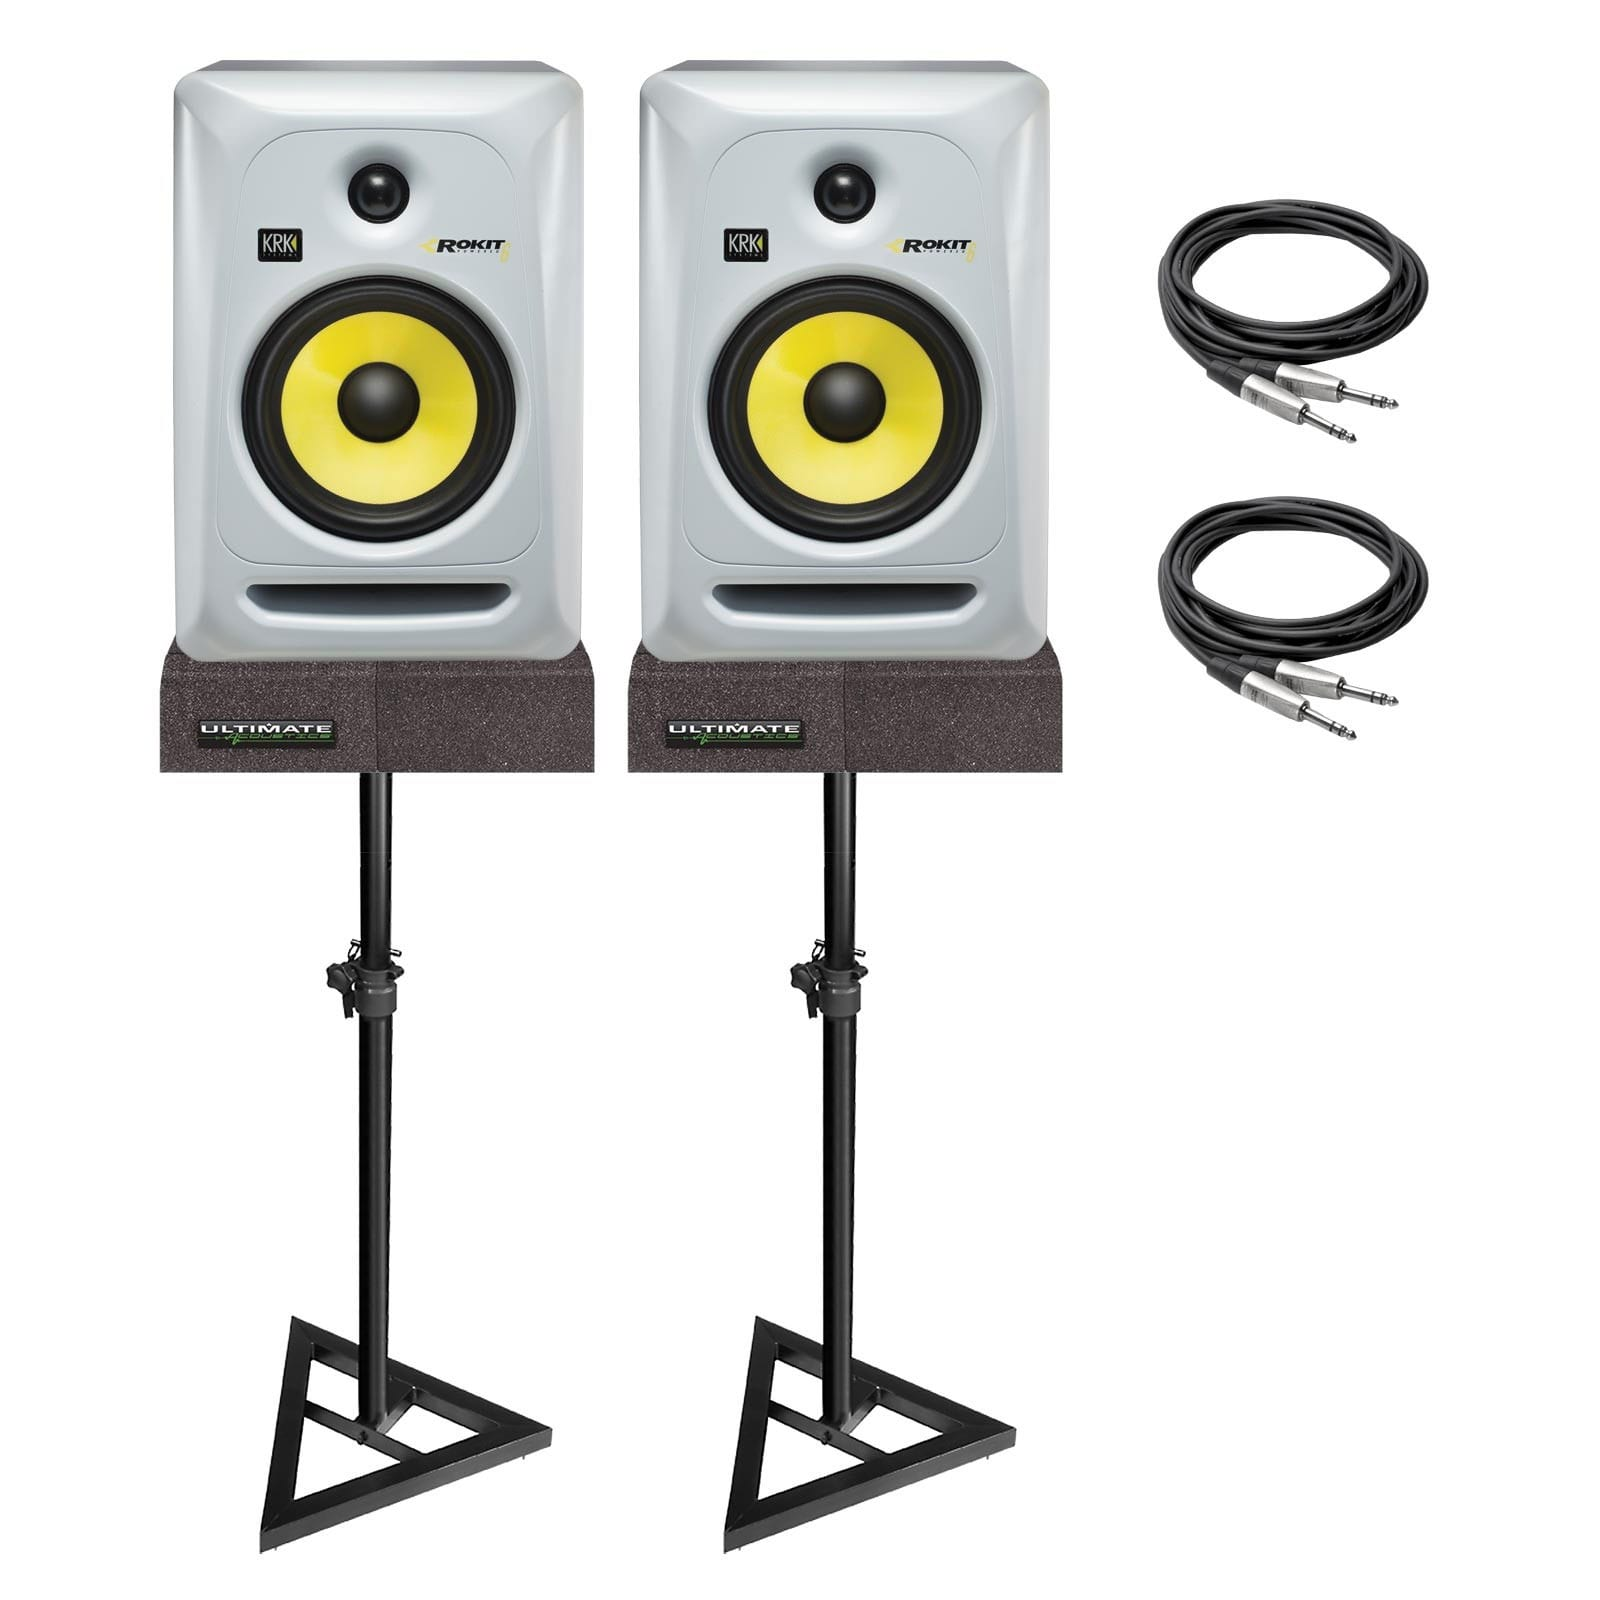 2-krk-rokit-6-g3-rp6g3-6-white-powered-studio-monitor-speakers-with-stands-bluetooth-wireless-in-ear-headphones-package-27d